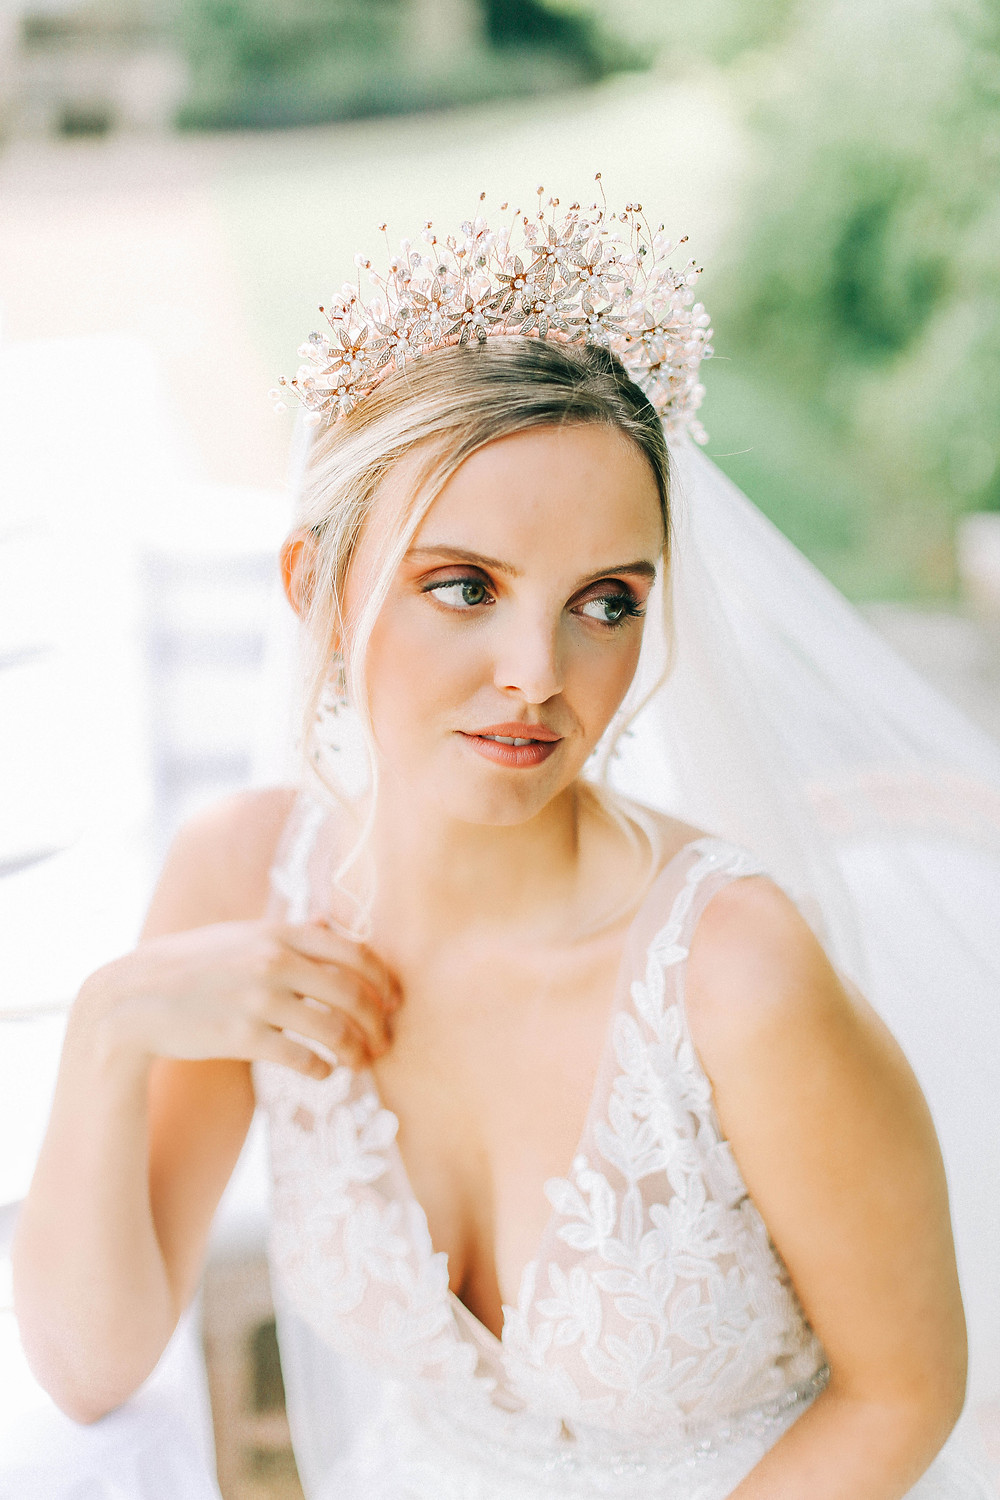 close up of gadina bridal tiara from Abigail grace bridal Accessories on bride at hamswell house